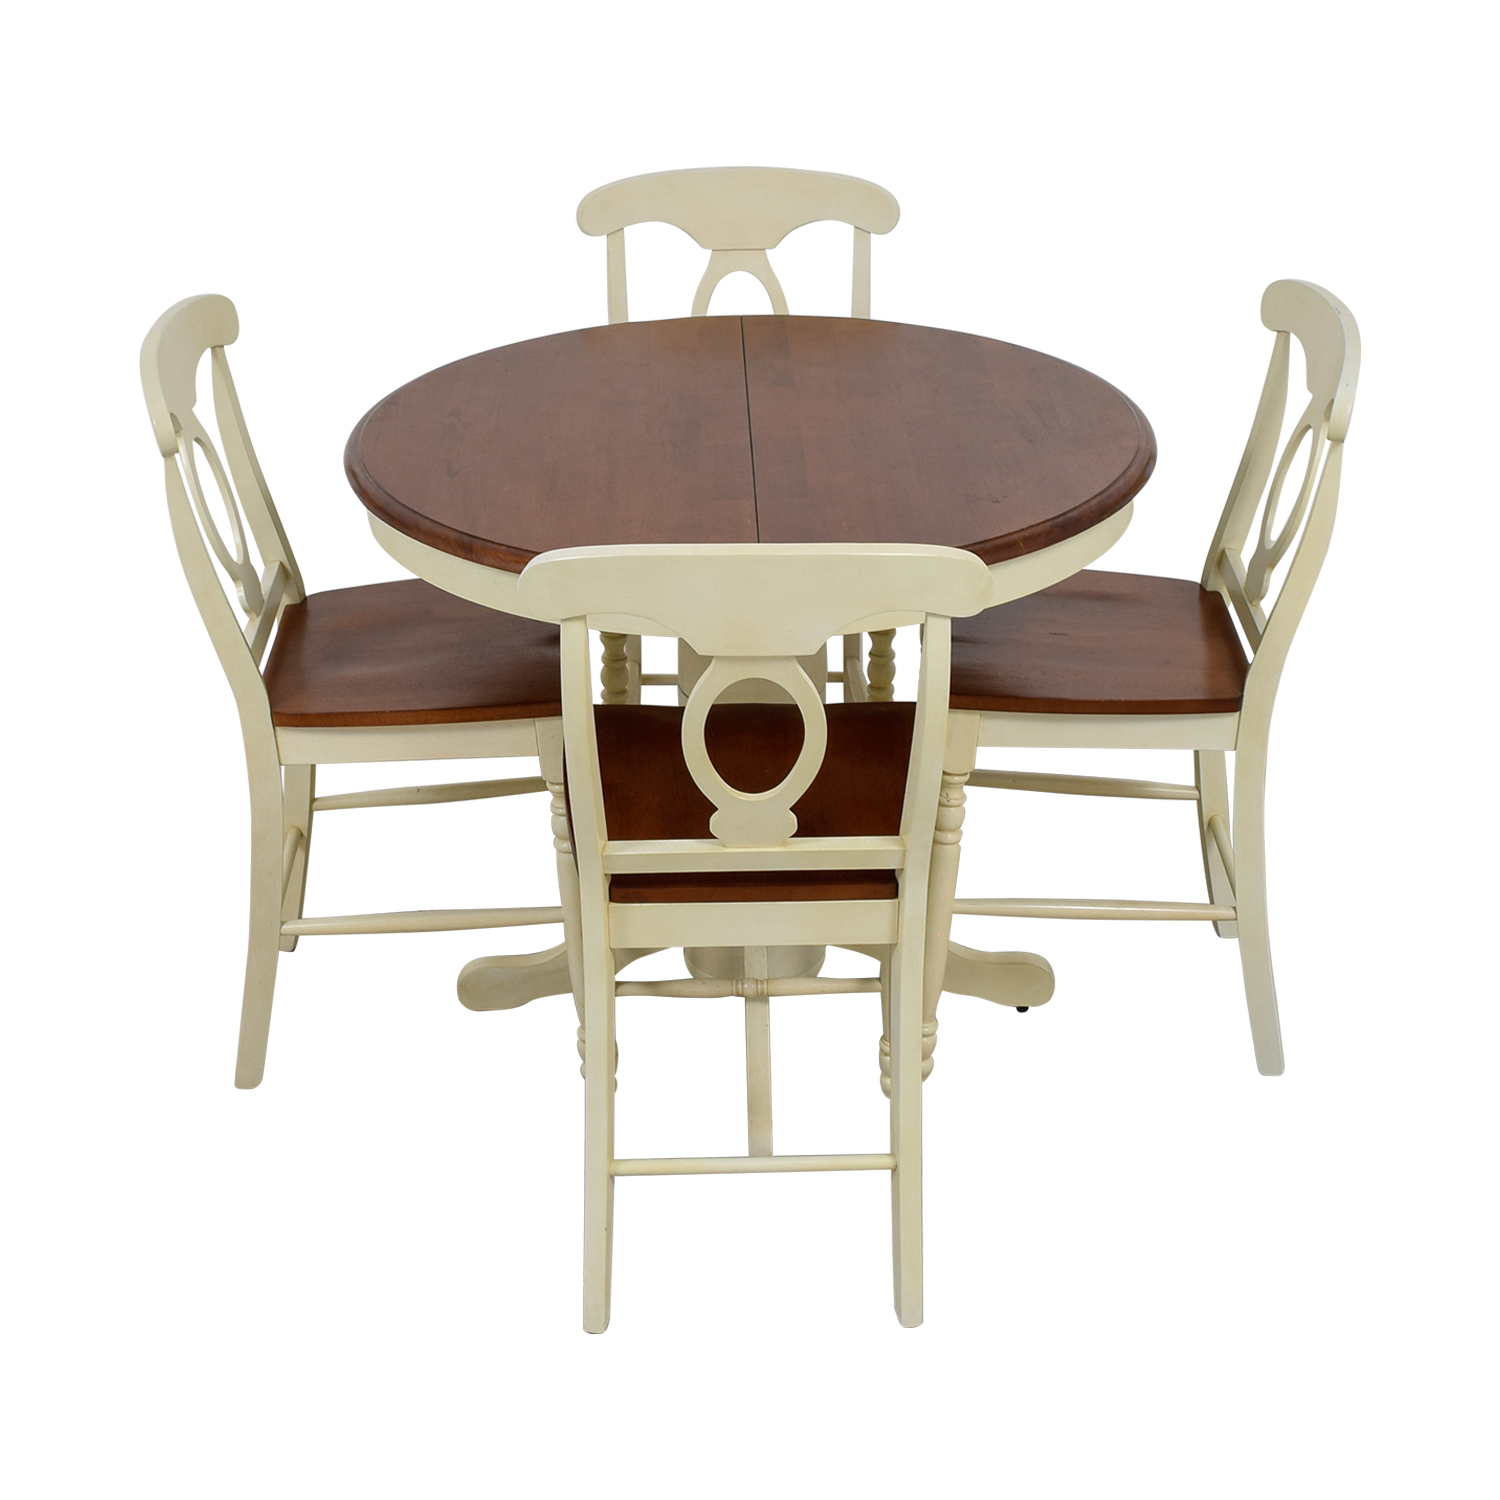 Raymour & Flanigan Raymour & Flanigan Kenton II Extendable Dining Set price